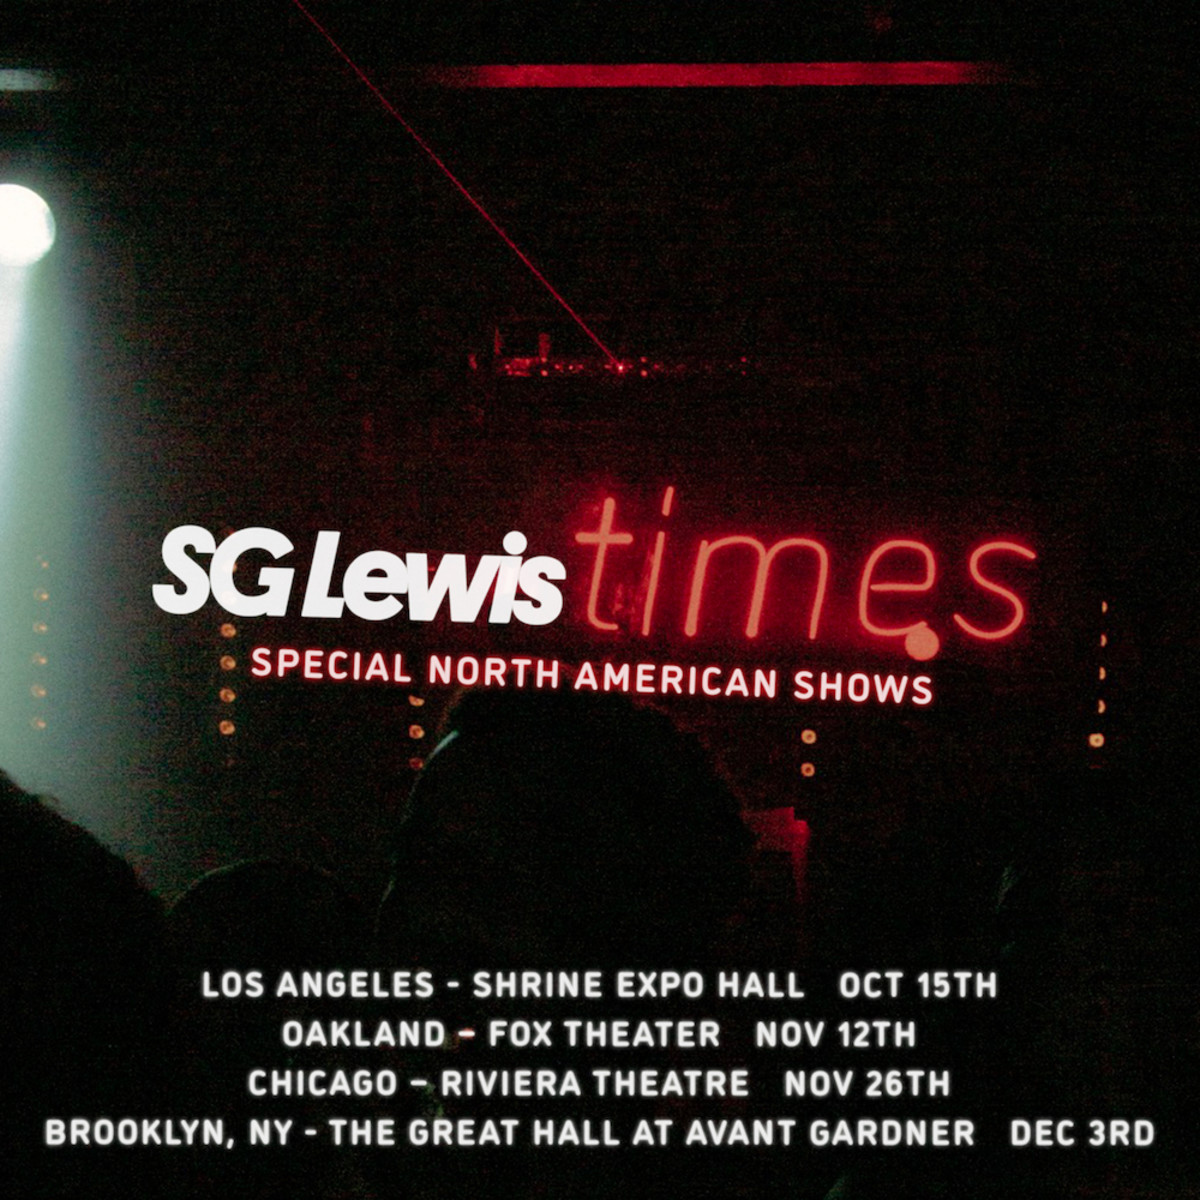 """SG Lewis will take his critically acclaimed """"times"""" album to select US cities for a headlining tour in 2021."""